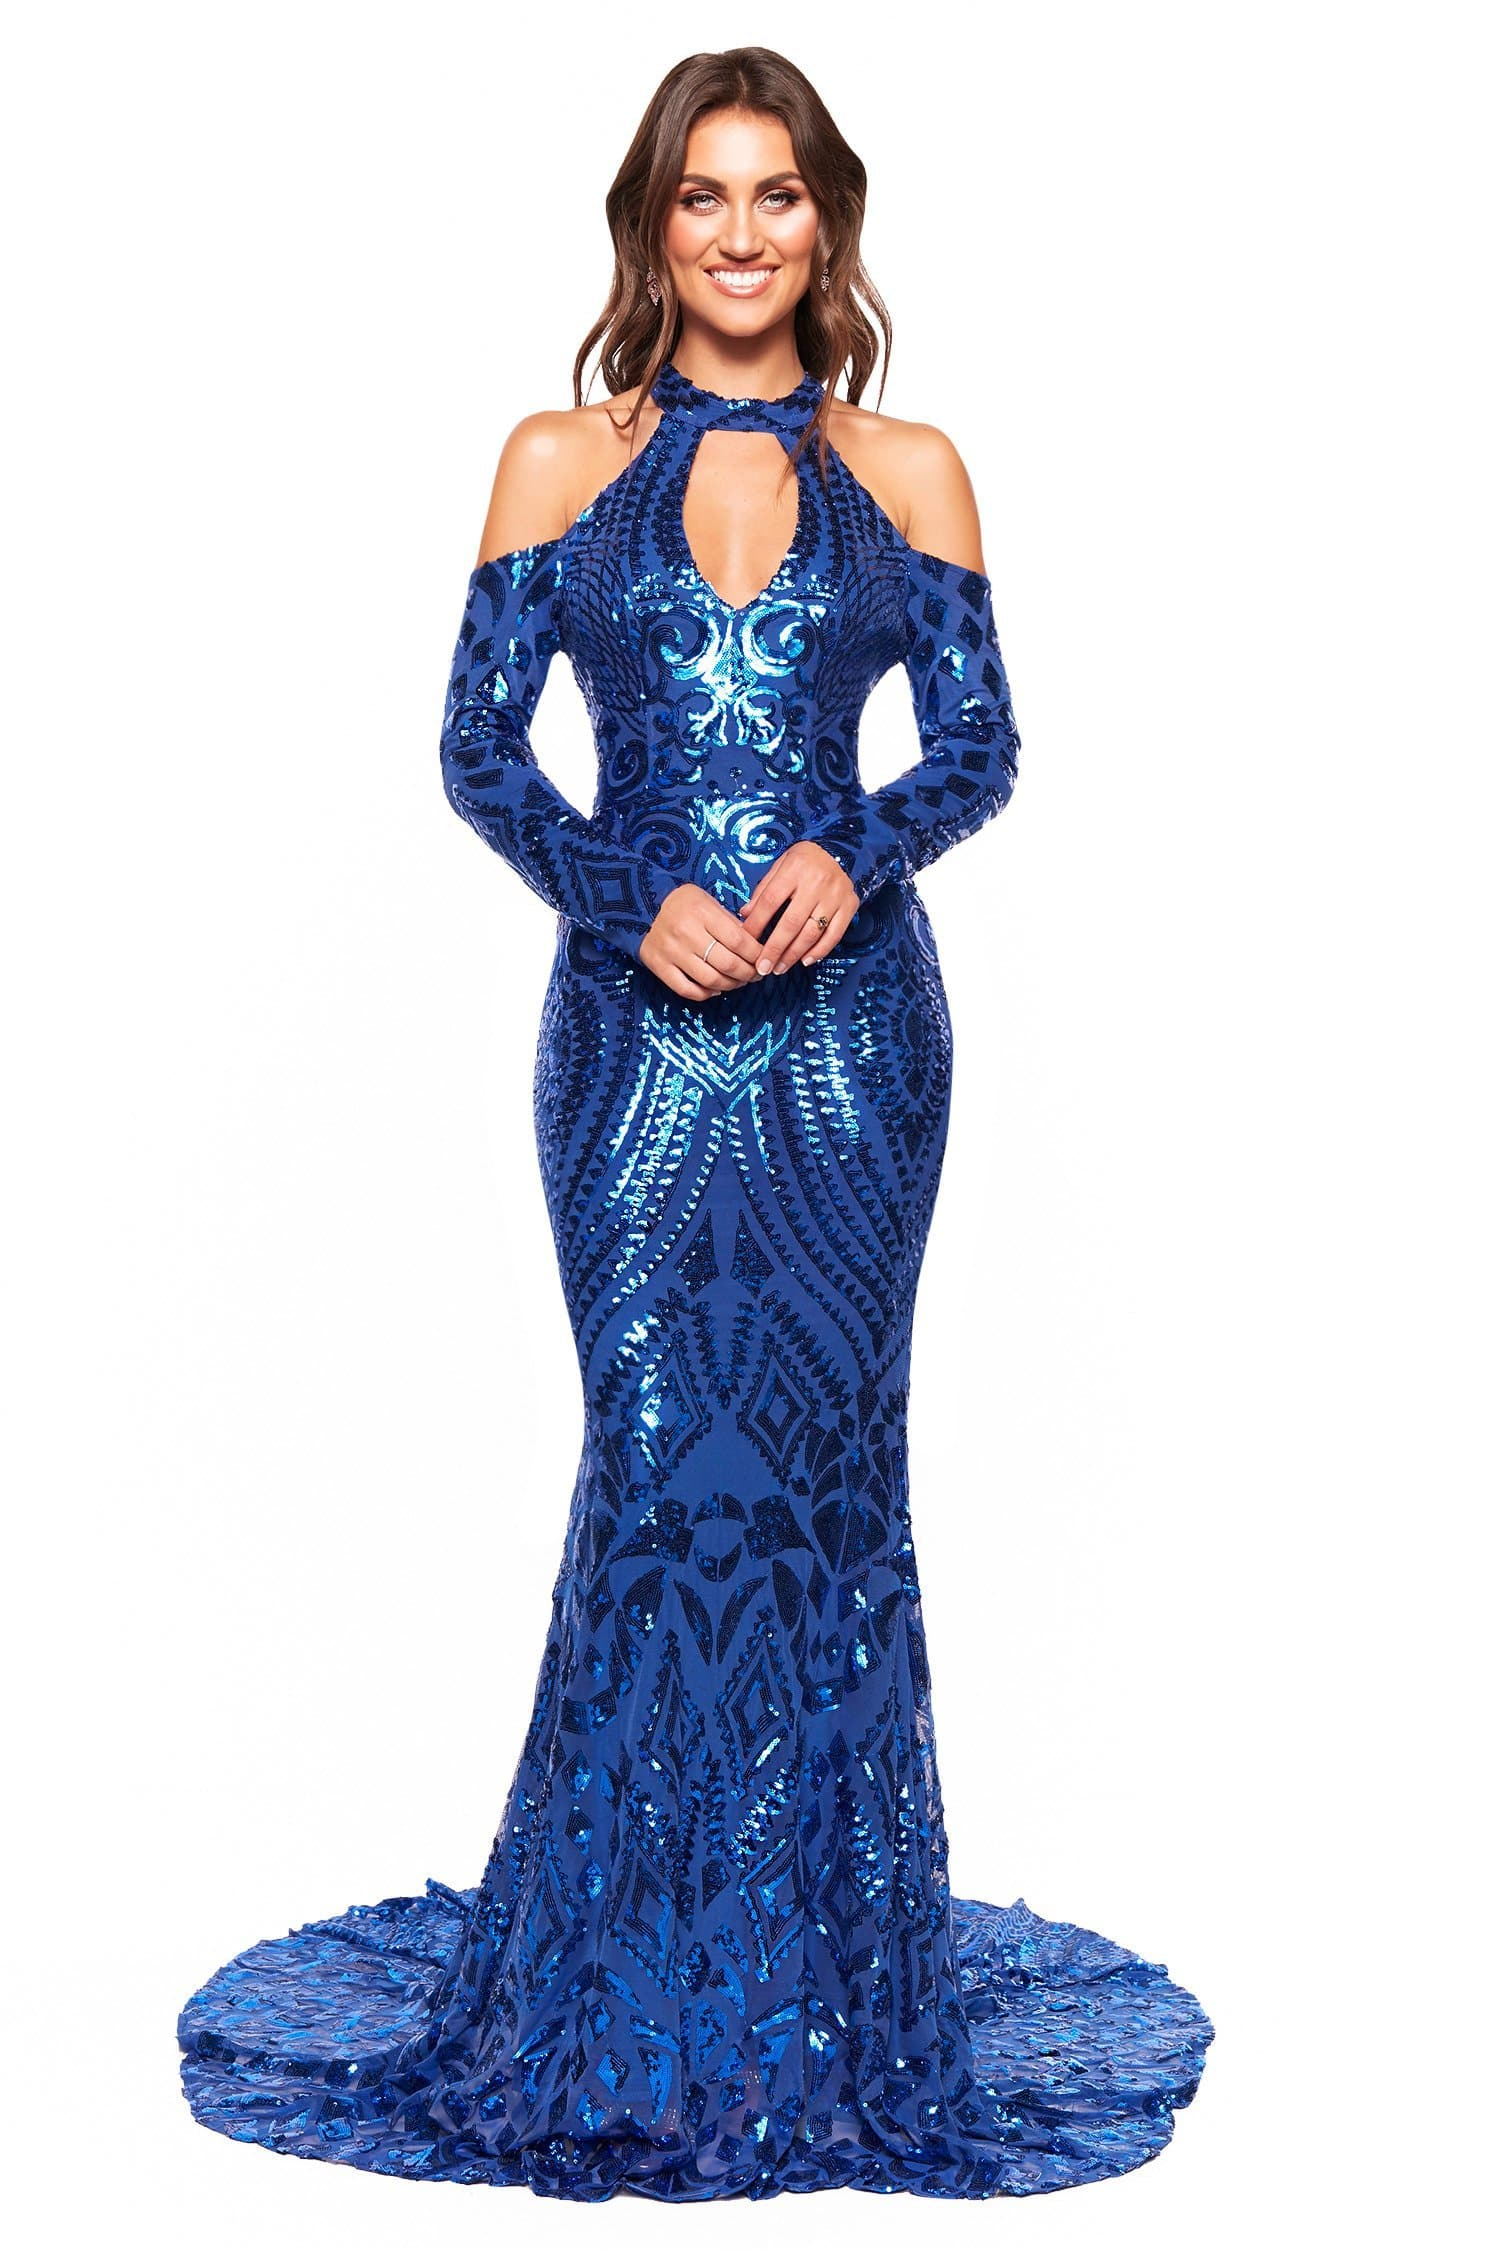 A&N Luxe Sierra - Royal Blue Patterned Sequin Gown with Cut Outs